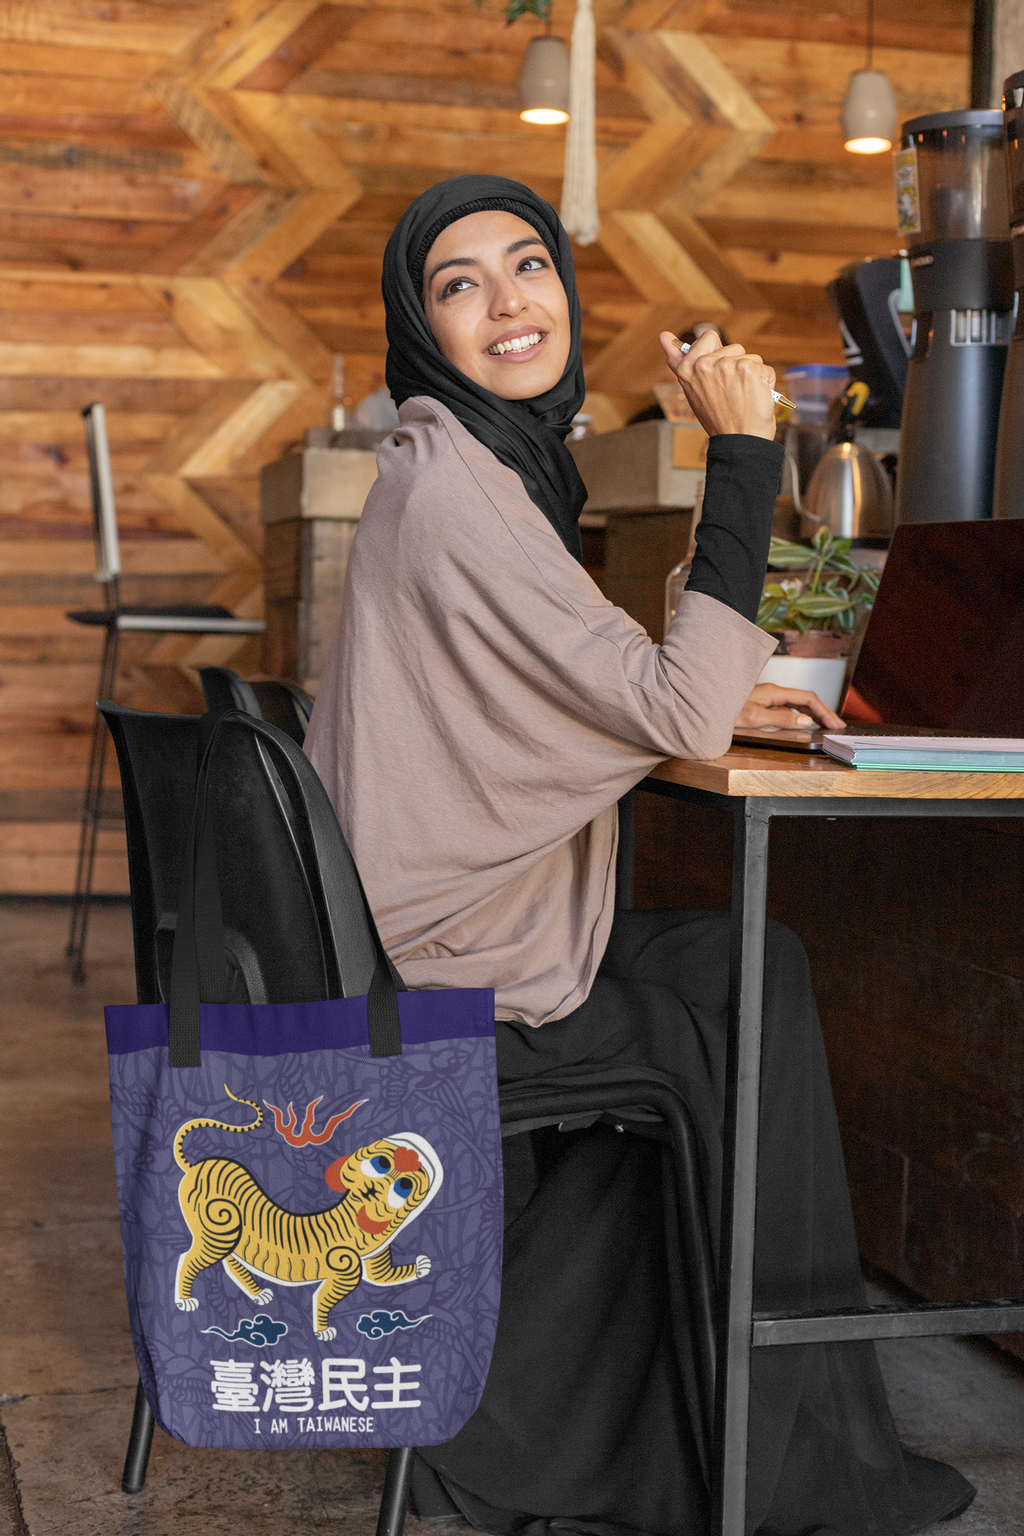 tote-bag-mockup-of-a-woman-in-a-hijab-at-a-cafe-32399 (2).png